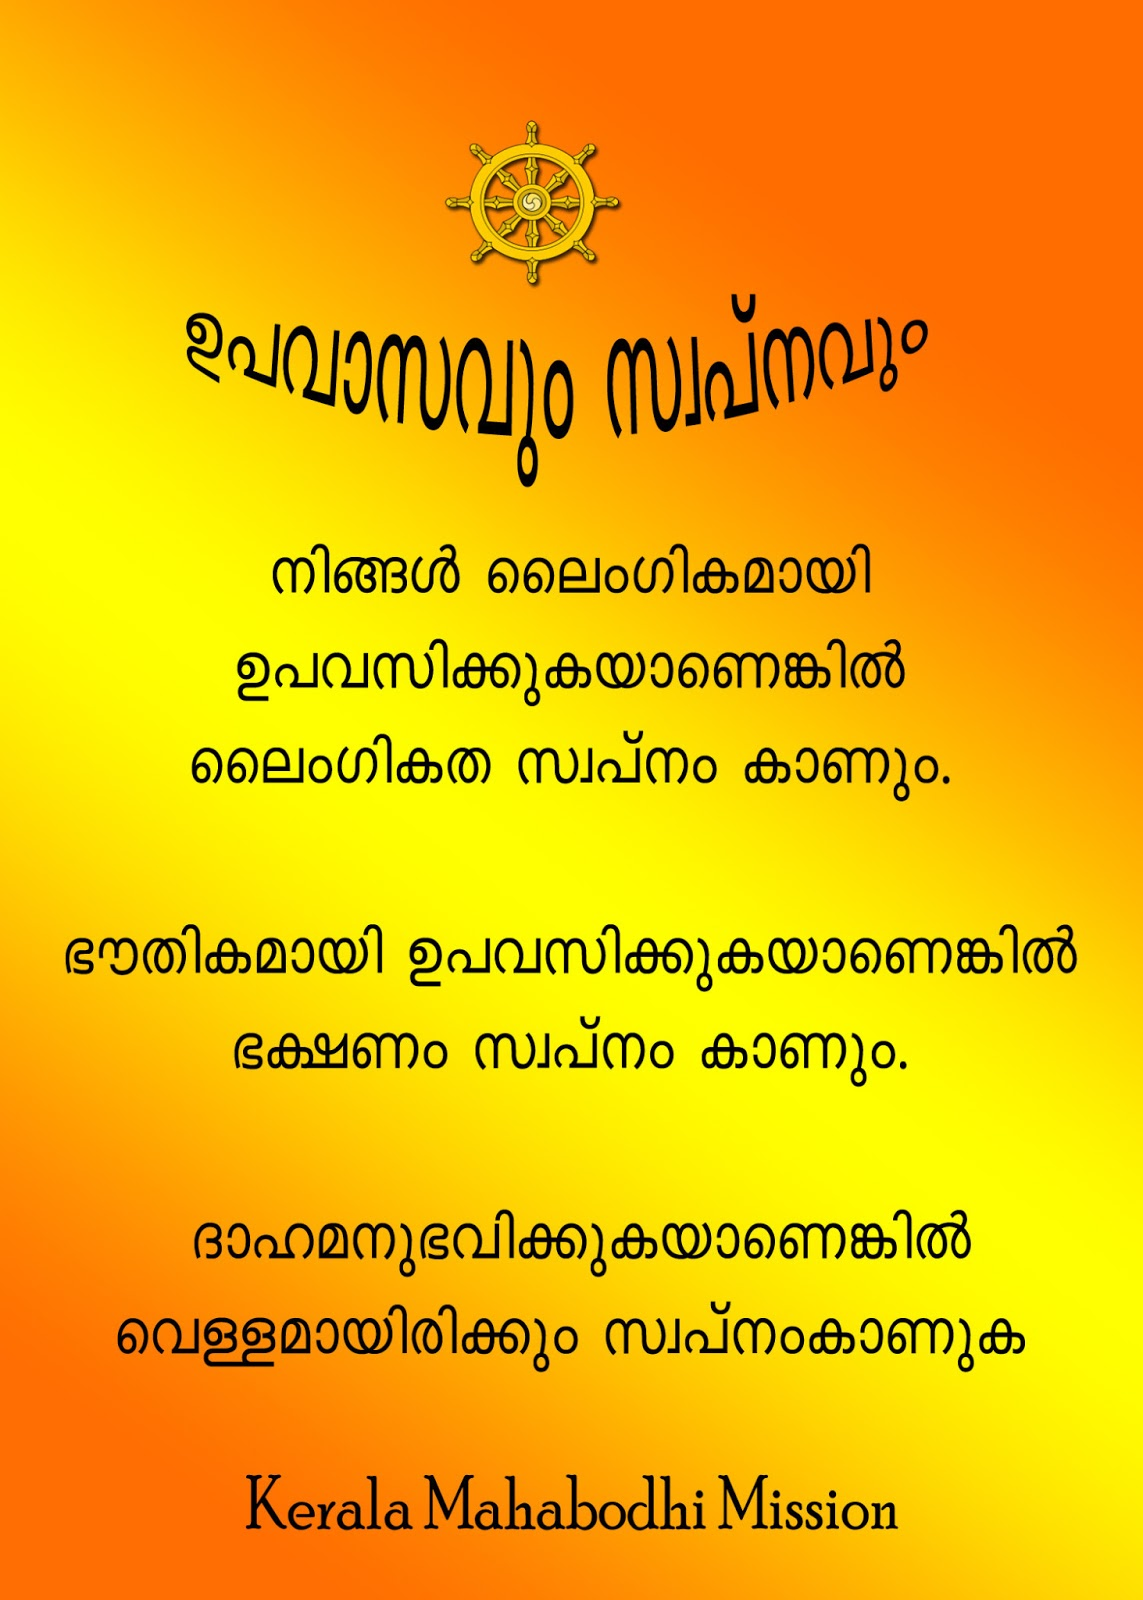 Malayalam Quotes About Life Quotesgram 67 Quotes